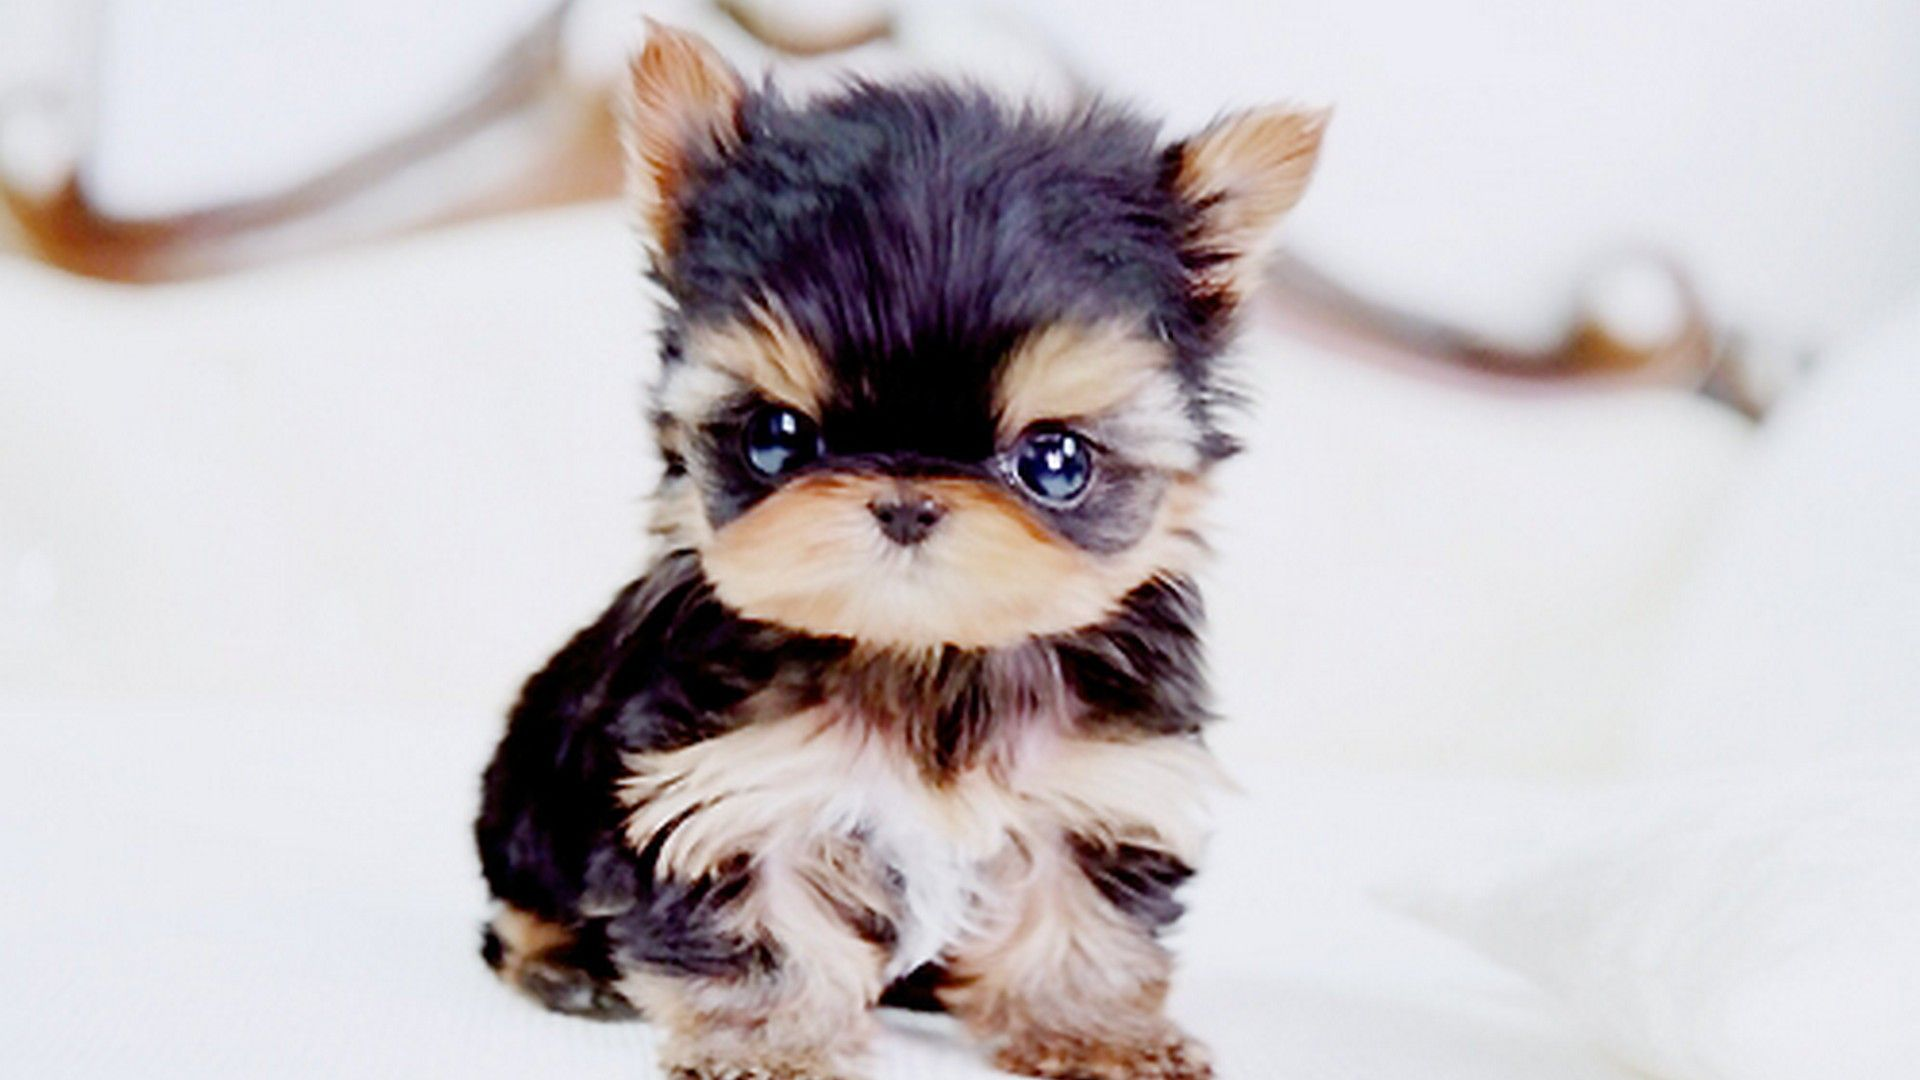 Puppy Wallpaper For Desktop Cute Tiny Dogs Cute Animals Teacup